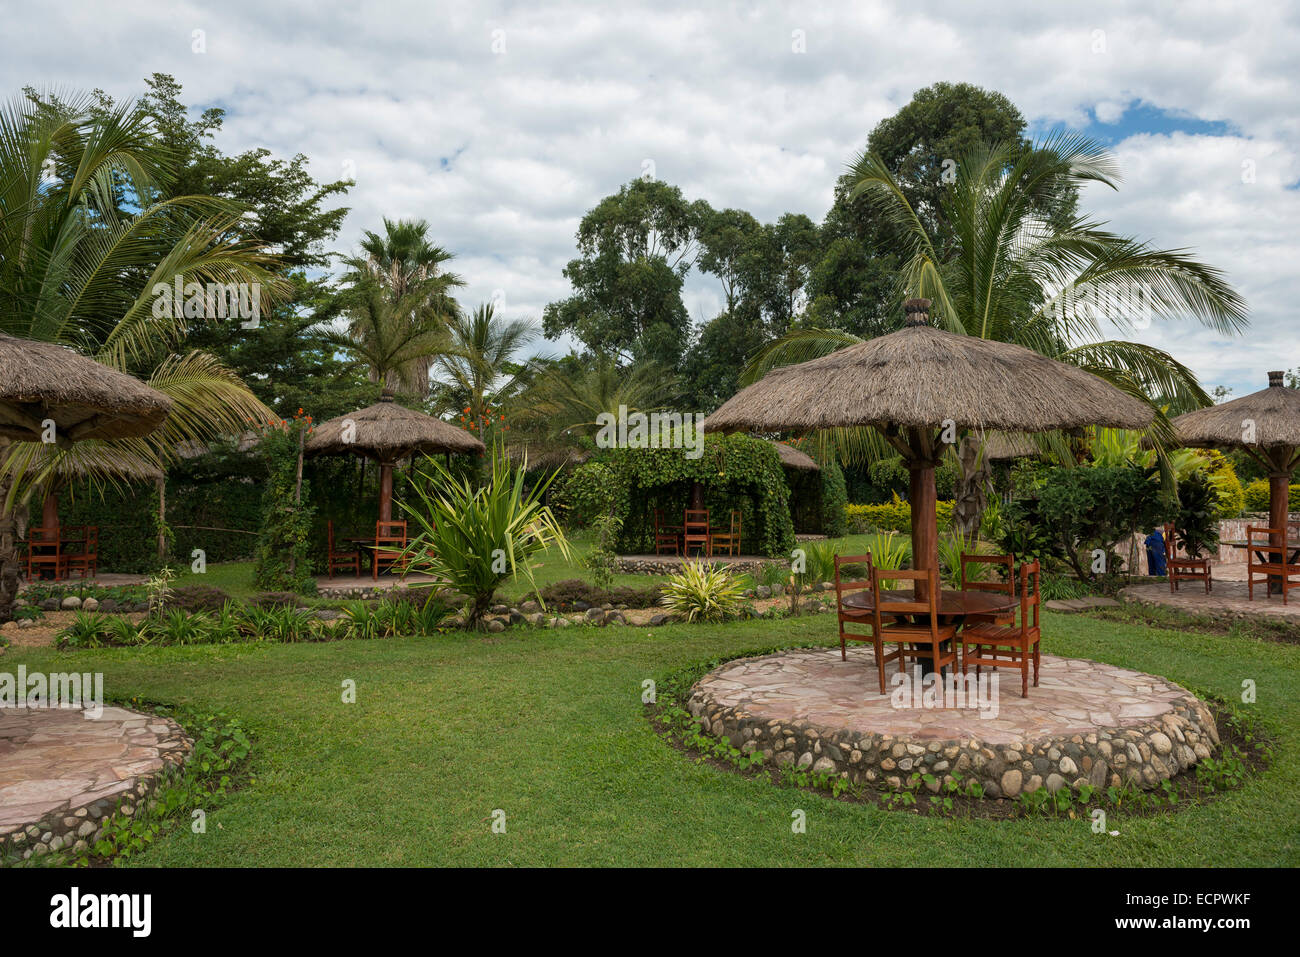 Jardins, Ouganda Photo Stock